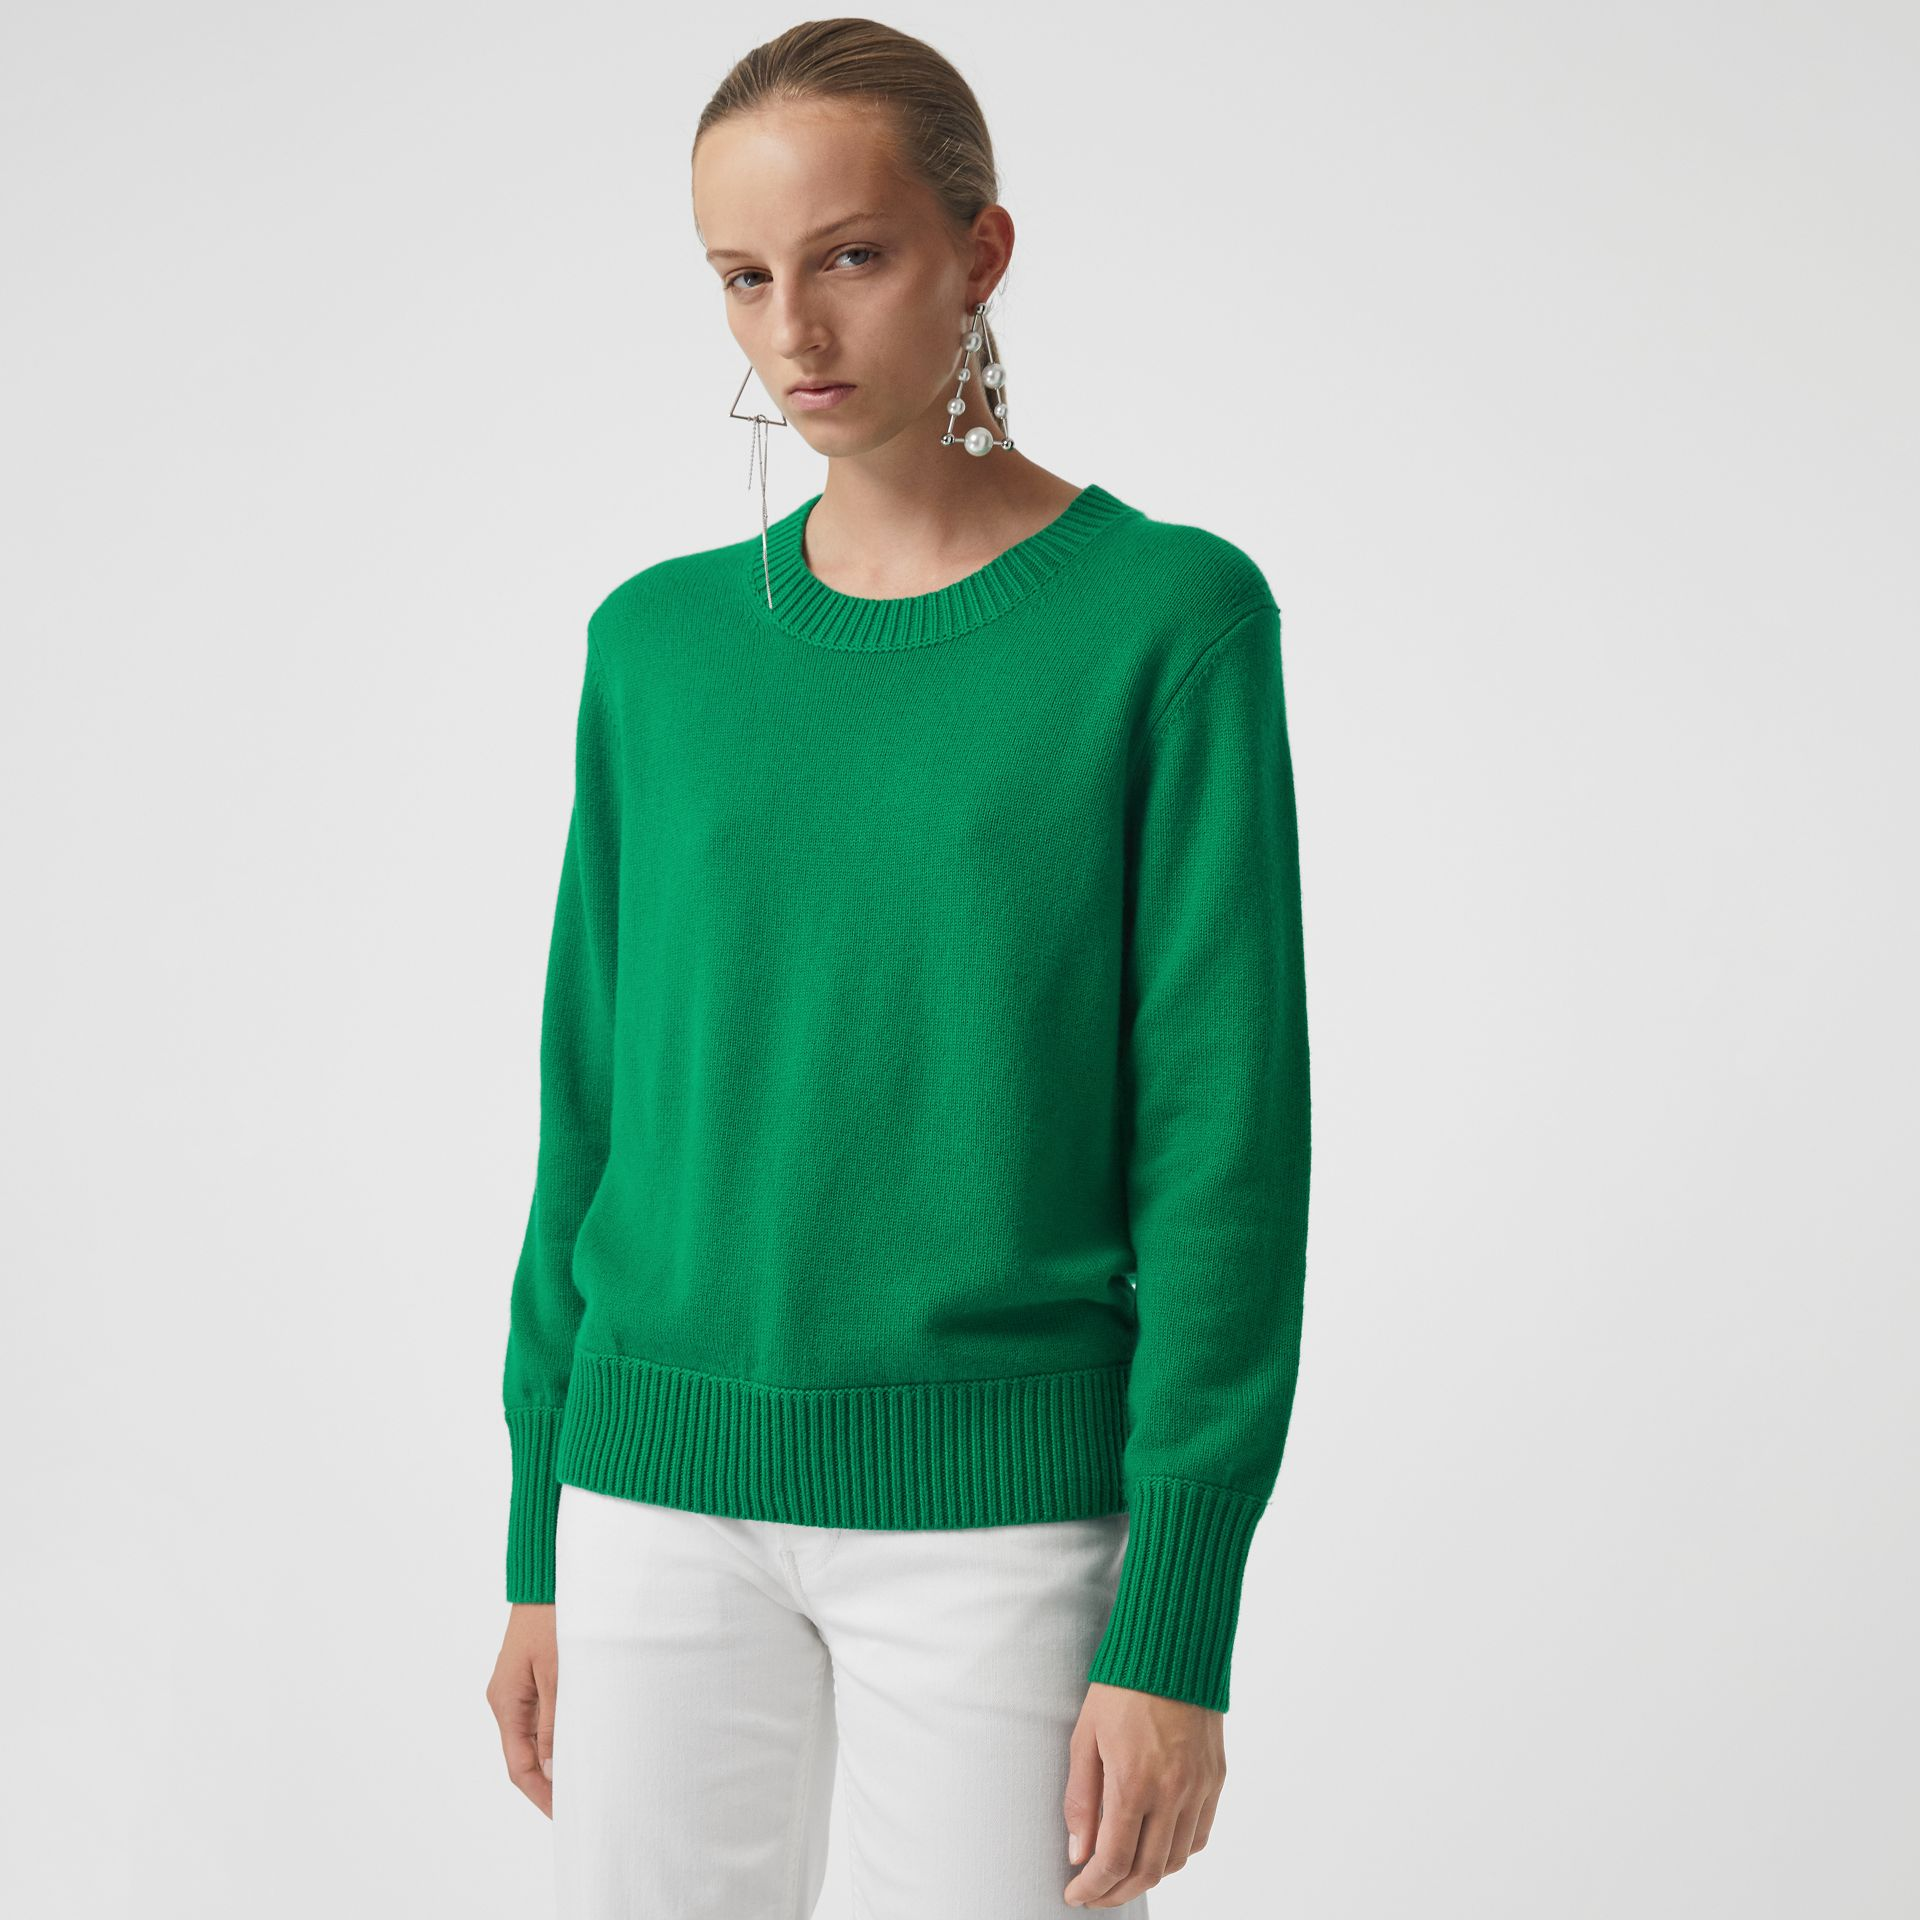 Archive Logo Appliqué Cashmere Sweater in Vibrant Green - Women | Burberry United States - gallery image 0